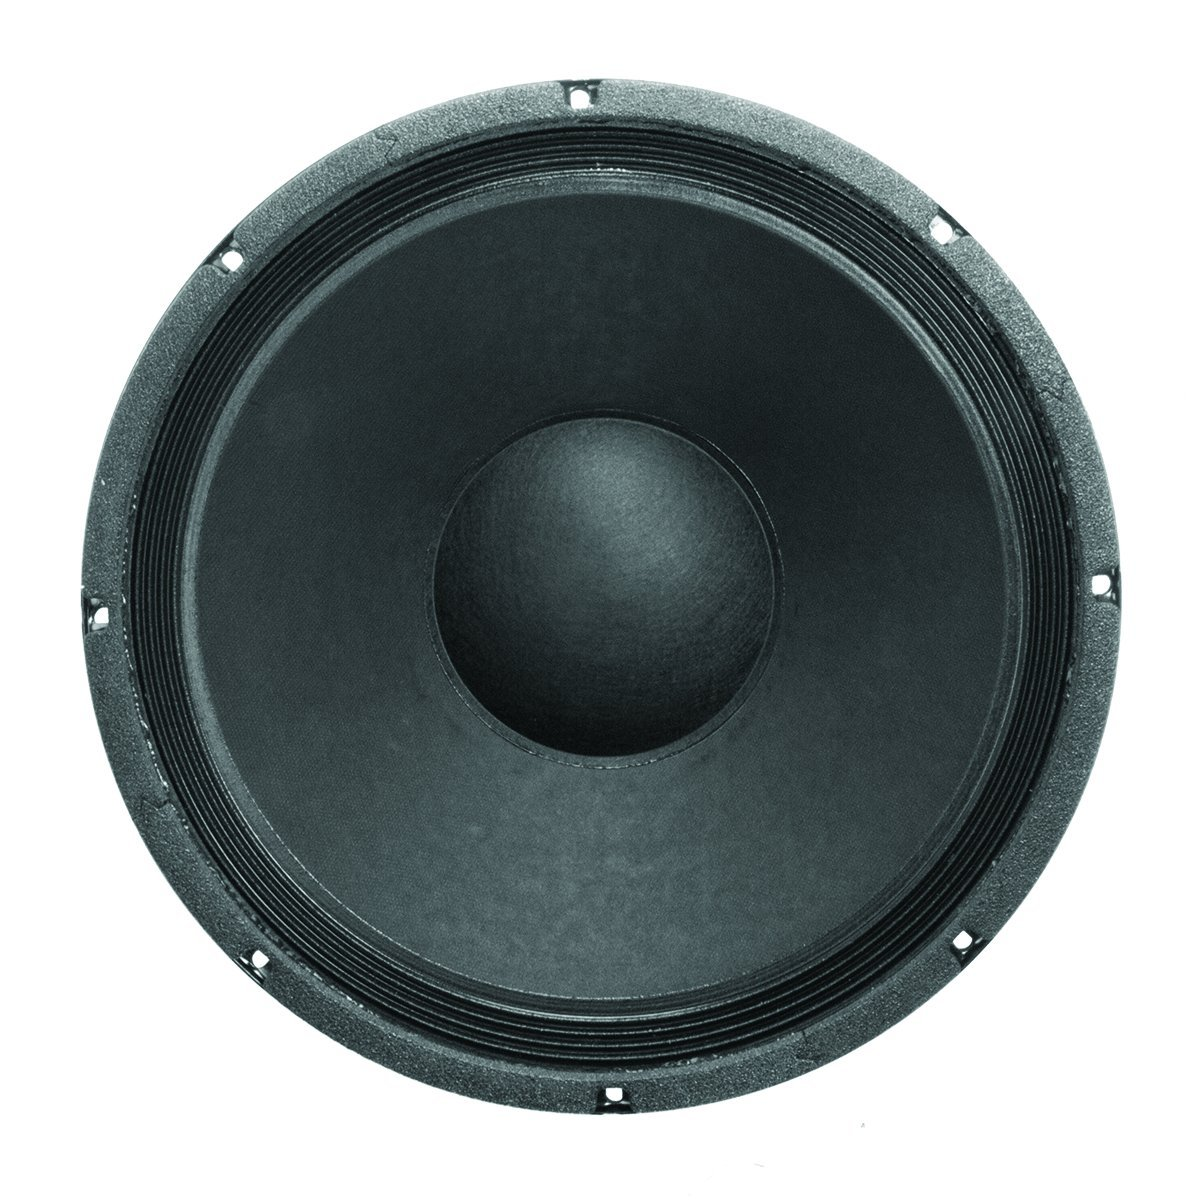 "Click here to buy Eminence LEGENDBP1525 350w,15"" 2.5vc 8ohms by Eminence."